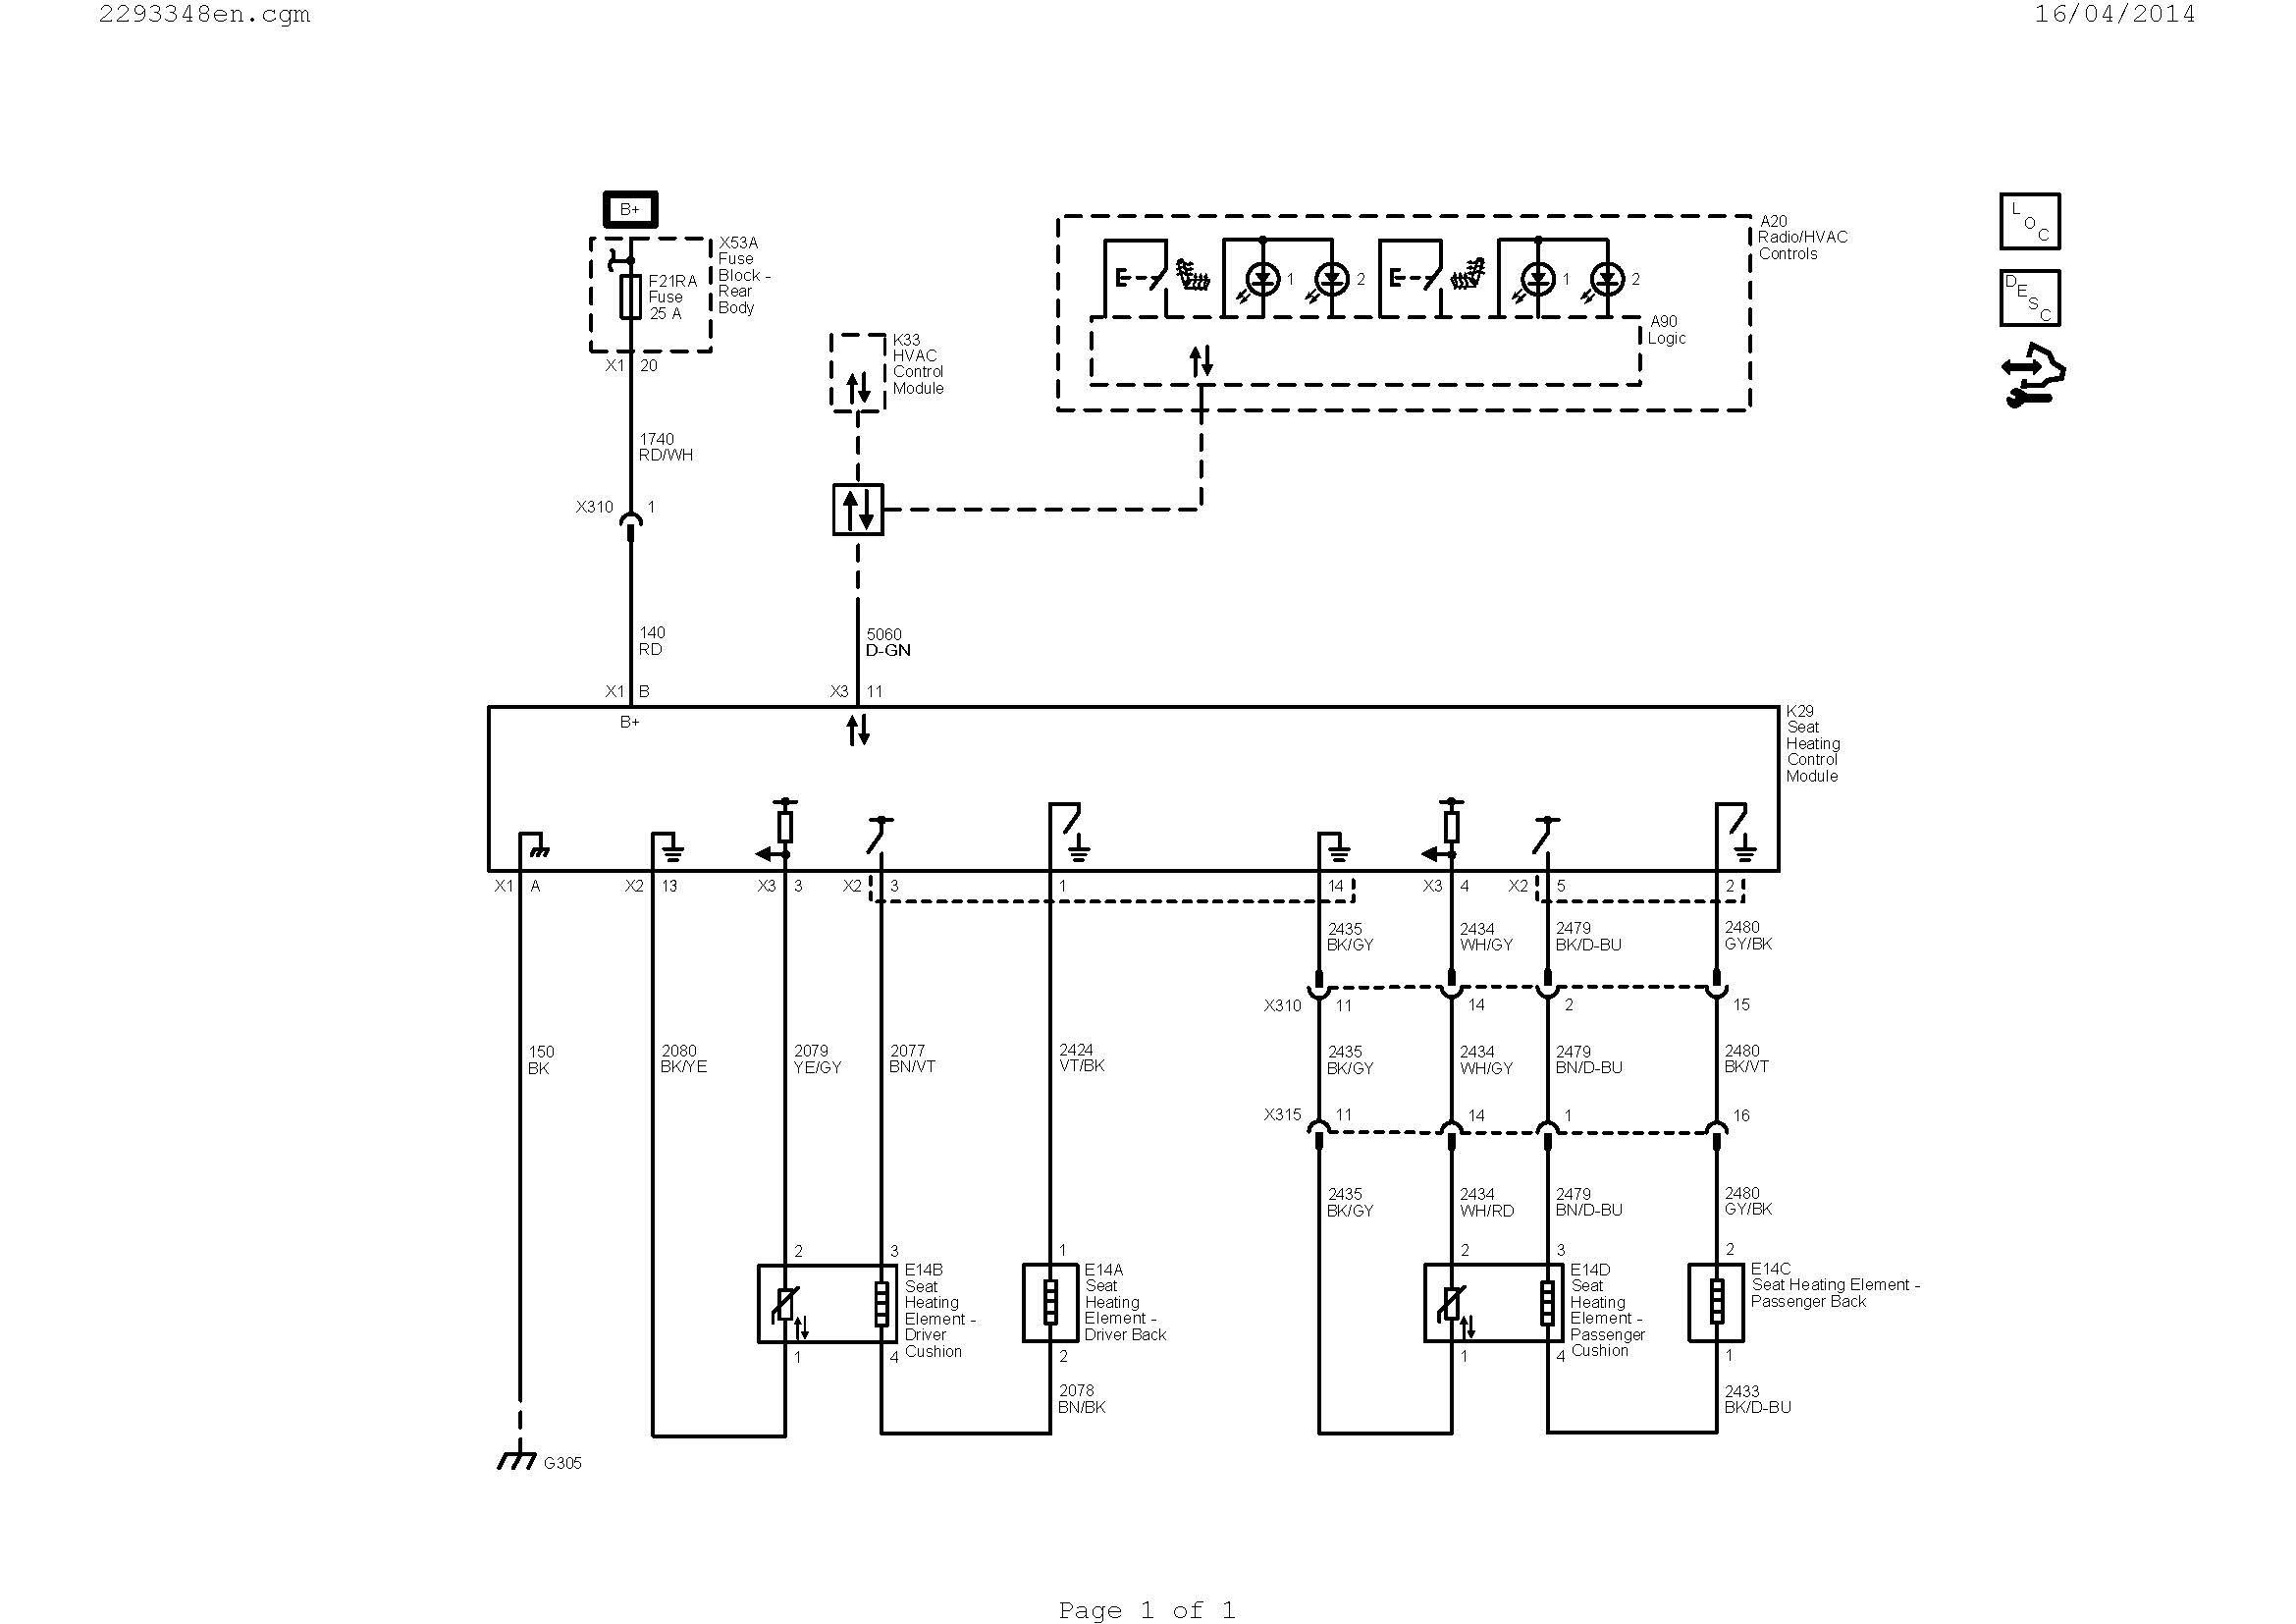 electrical wiring diagram software Download-Hvac Wiring Diagram software Wiring Diagrams for Electrical New Wiring Diagram Guitar Fresh Hvac Diagram 2-t